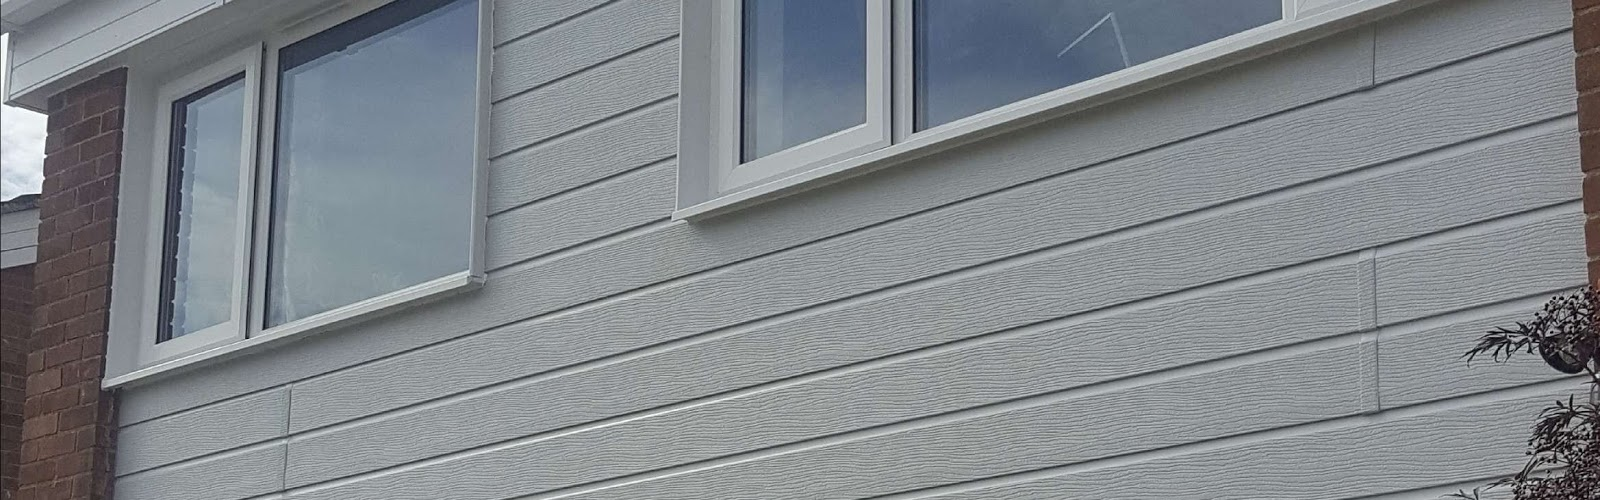 upvc fascia boards